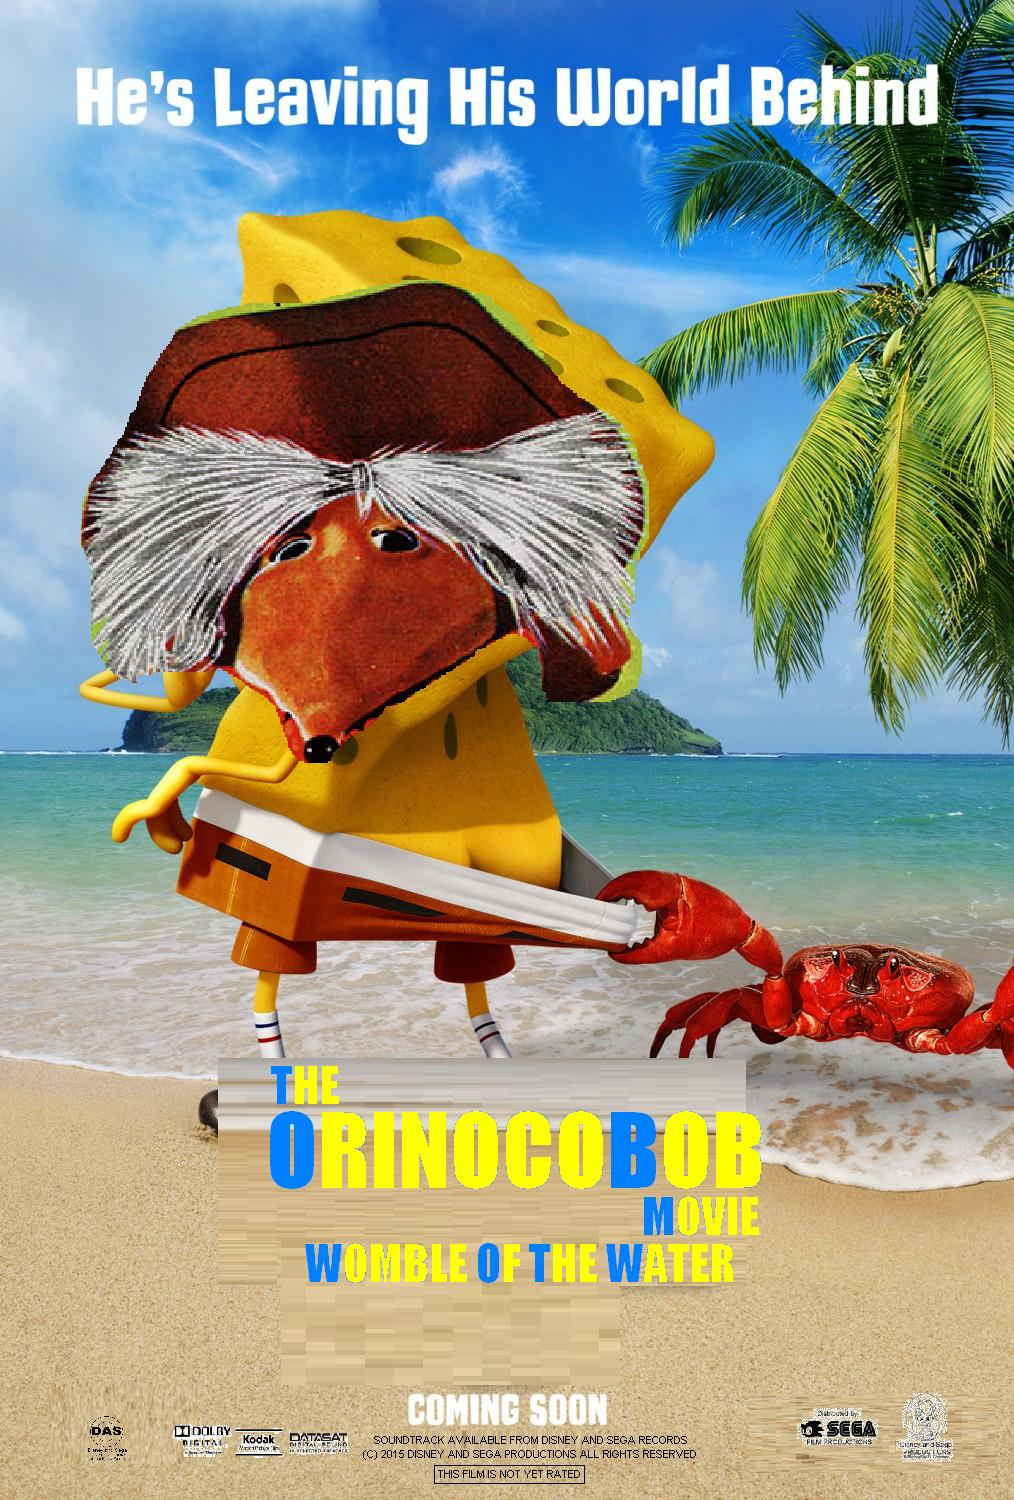 The Orinoco Movie: Womble Out of Water